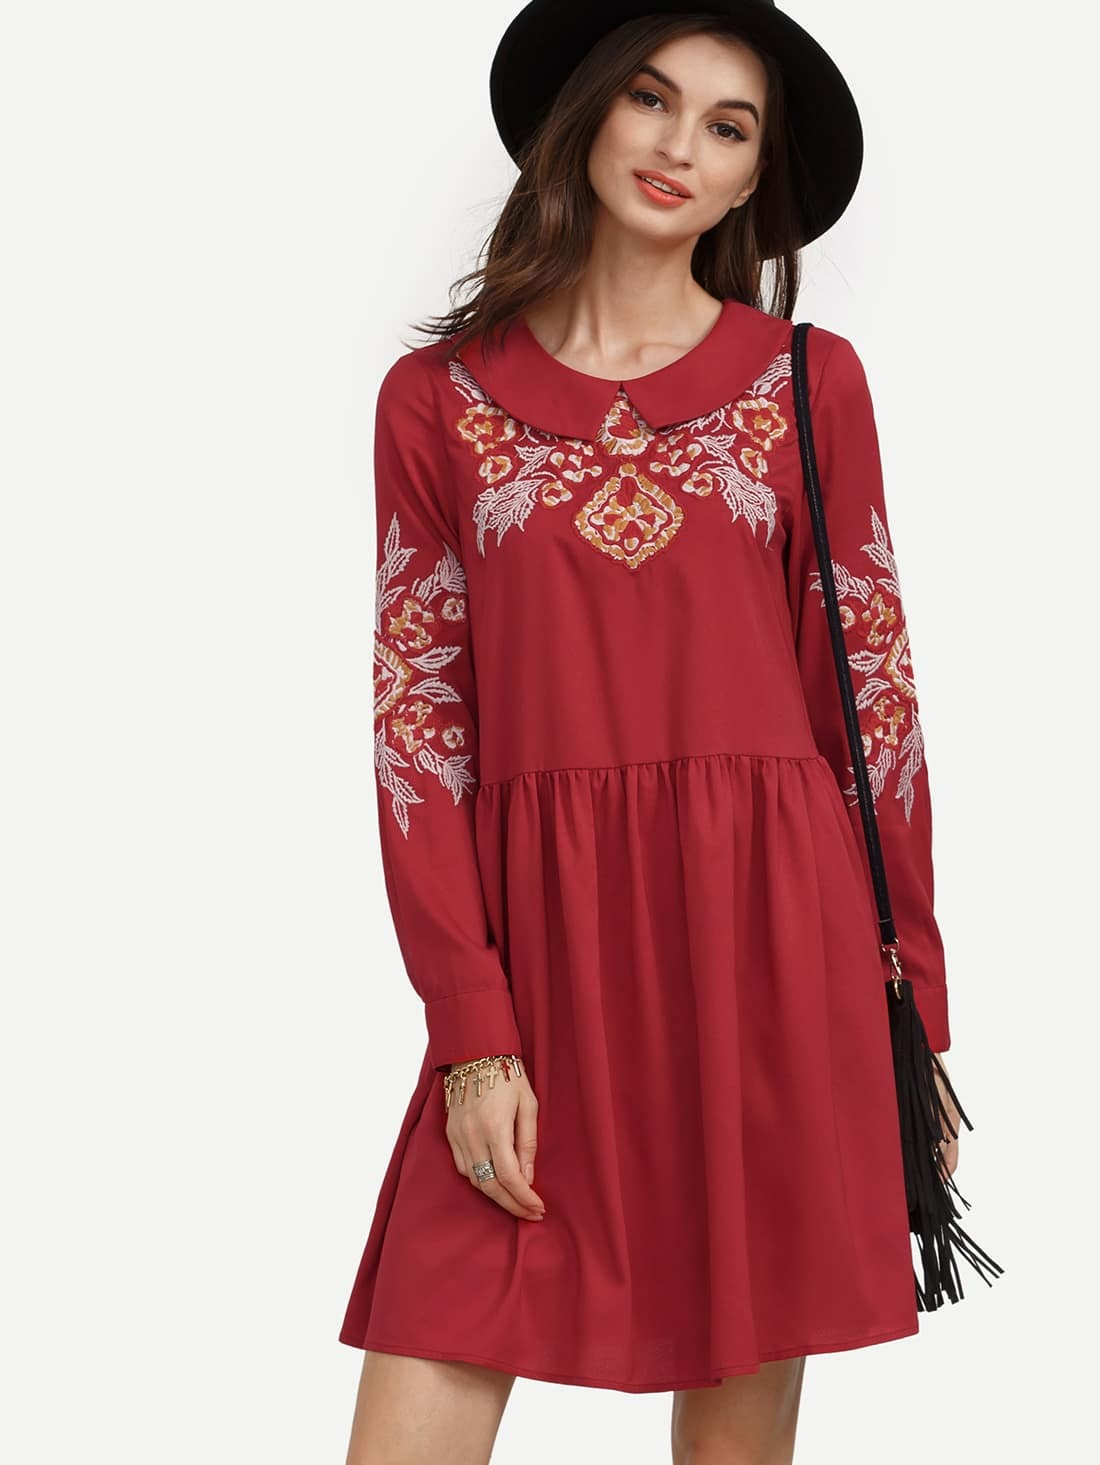 Robe col rond avec fleur brod e rouge french romwe for Interieur paupiere inferieure rouge